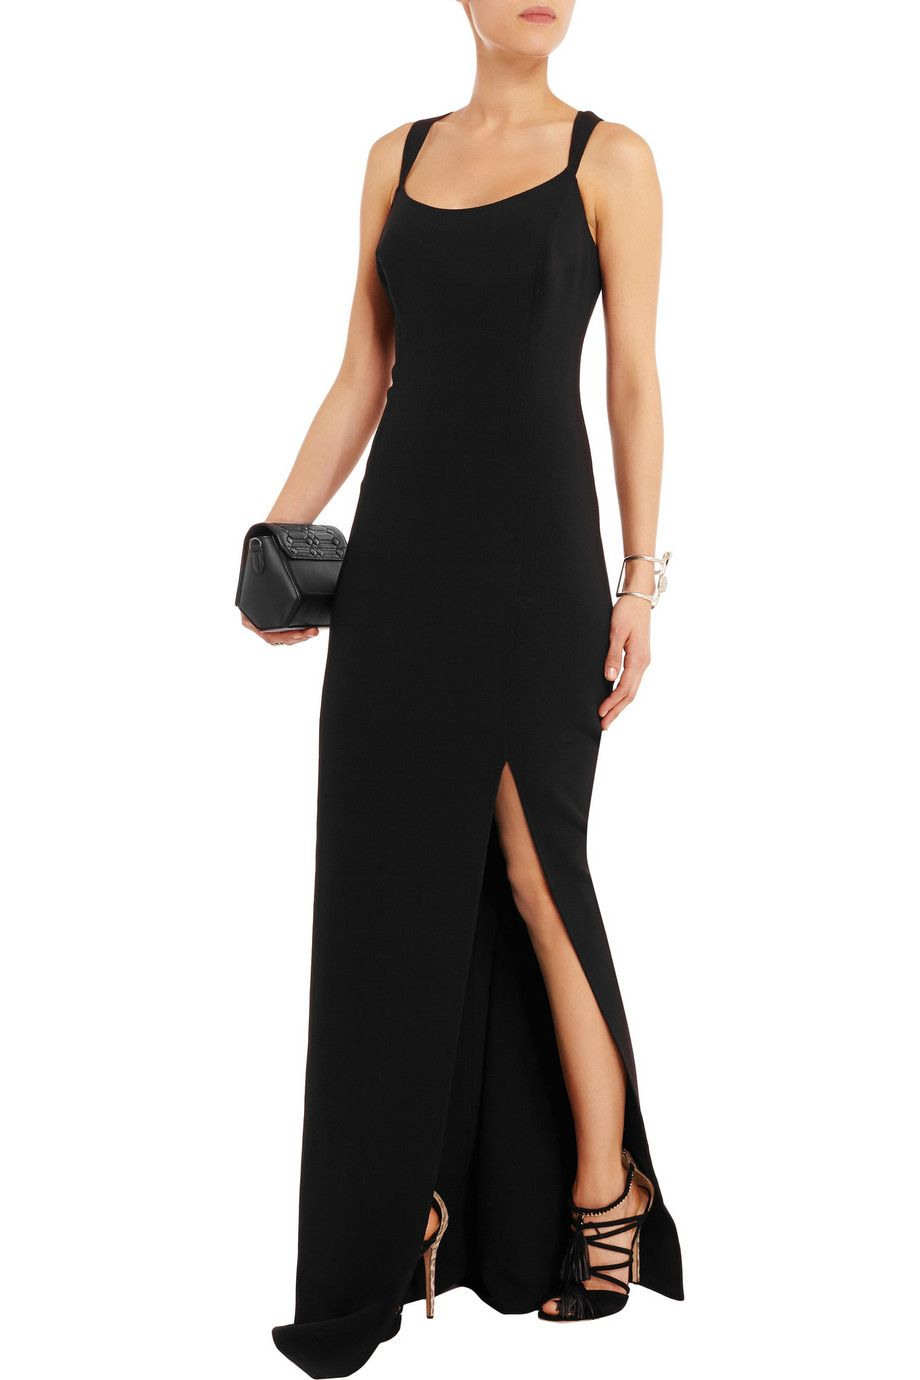 Michael Kors CollectionStretch-wool gownfront